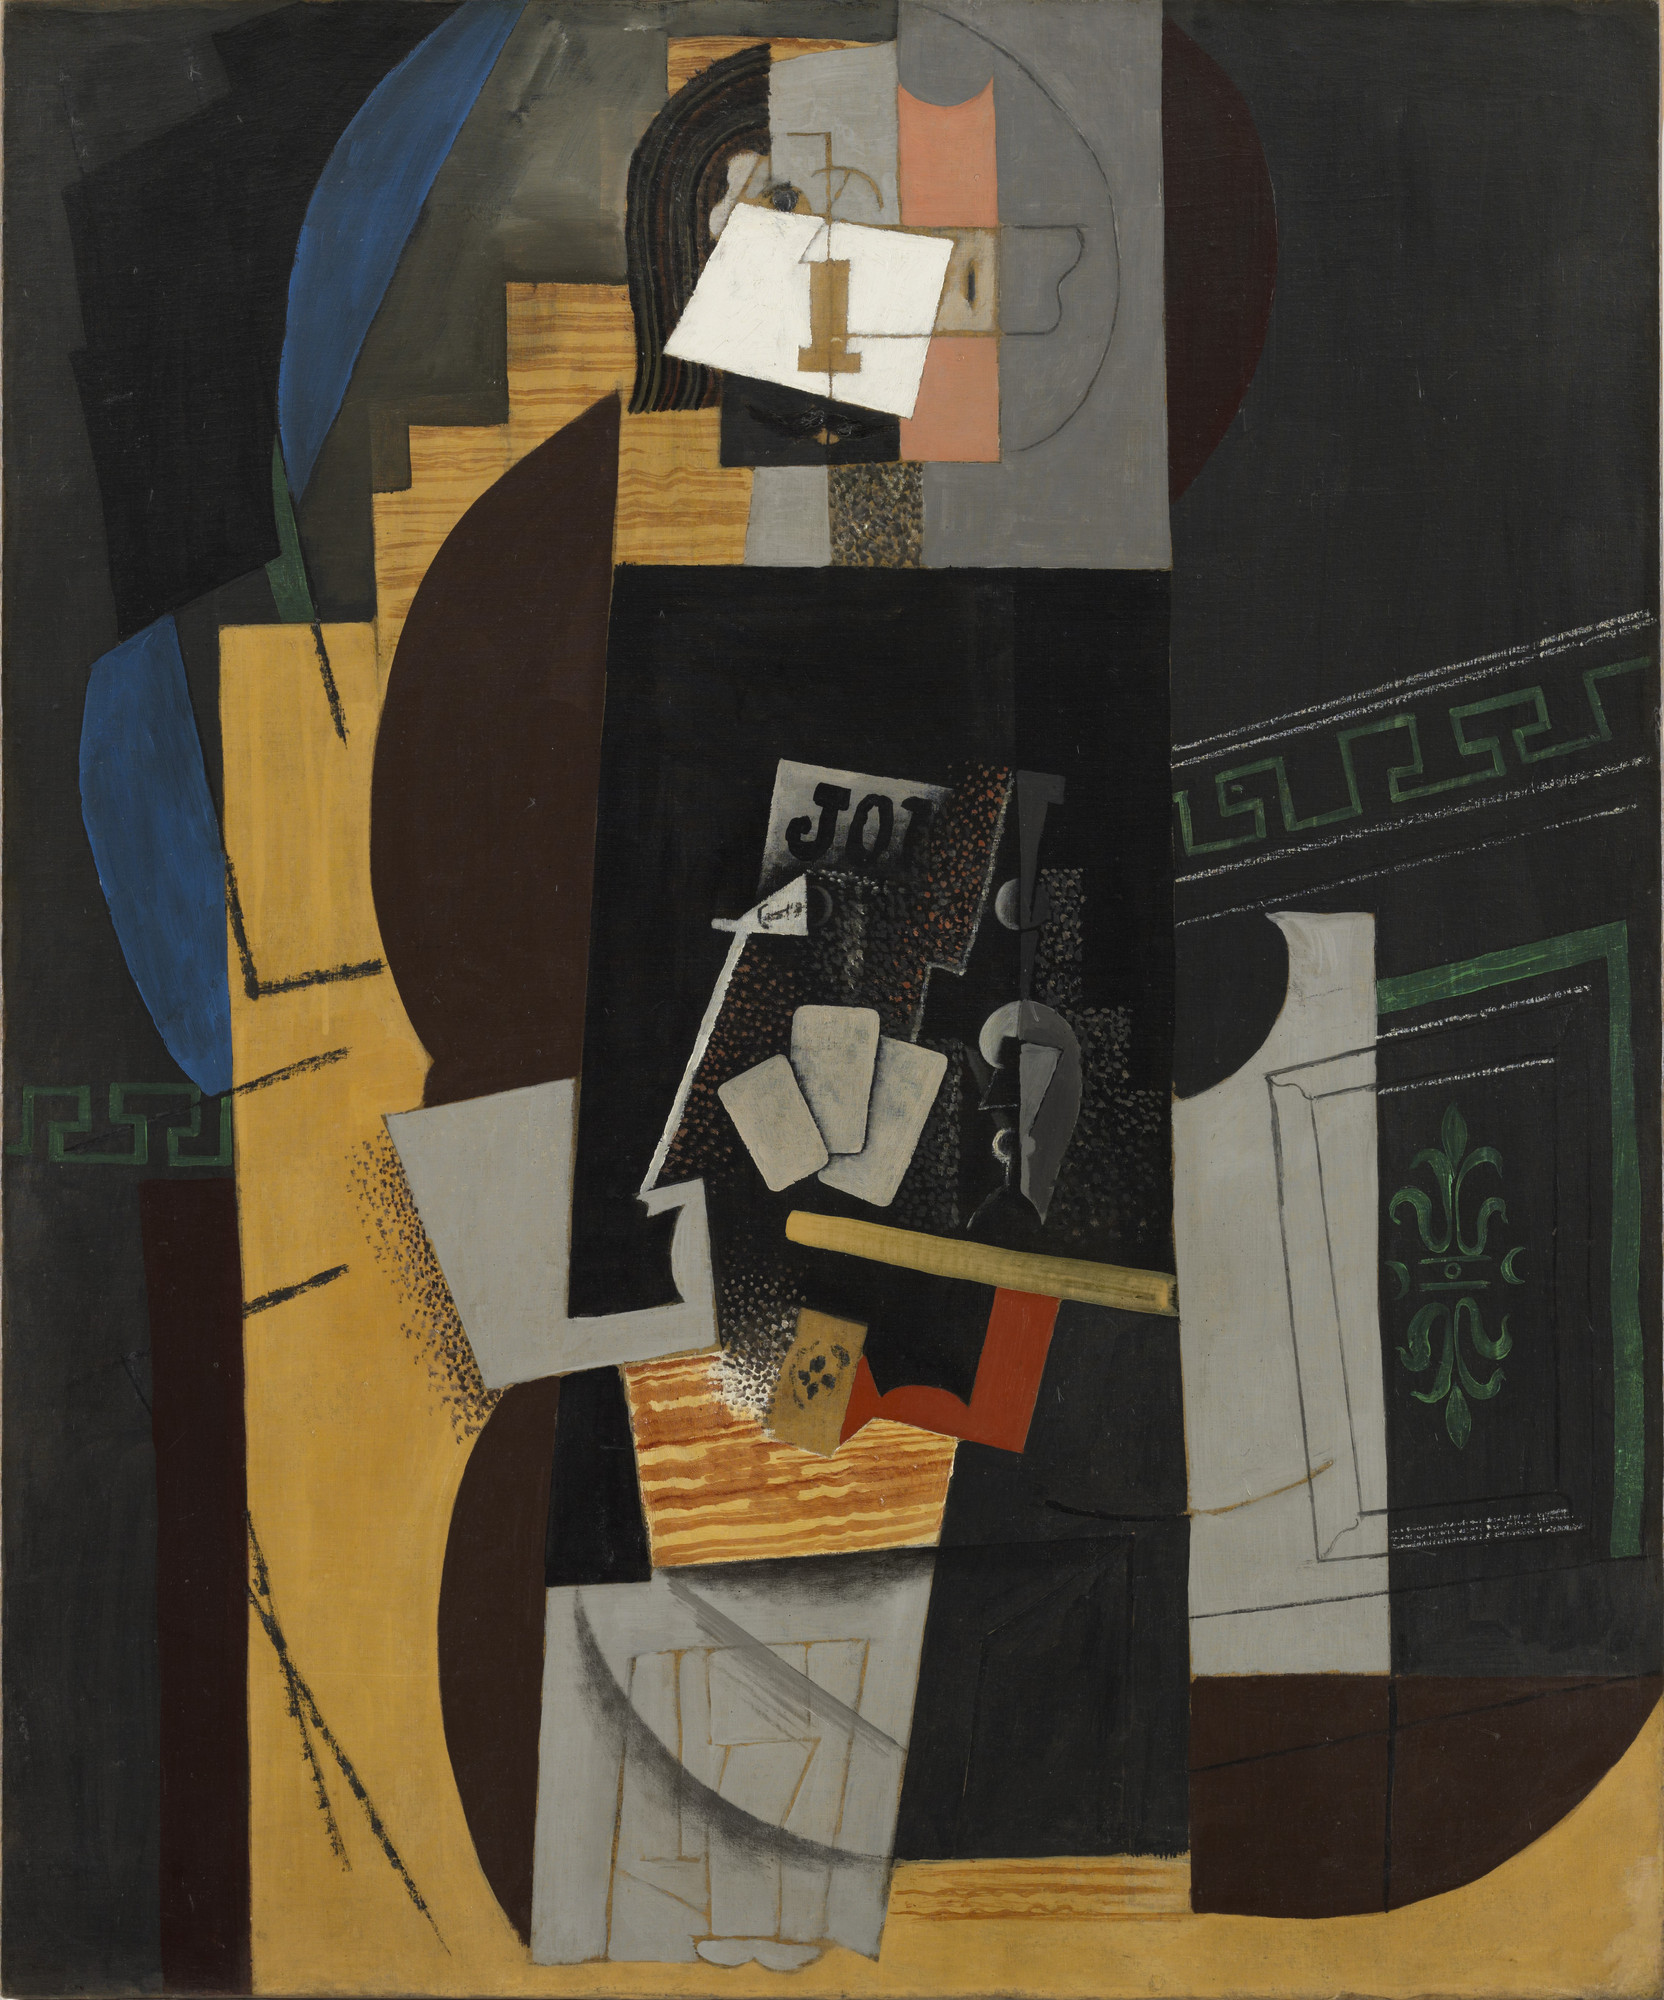 Pablo Picasso. Card Player. Paris, winter 1913-14